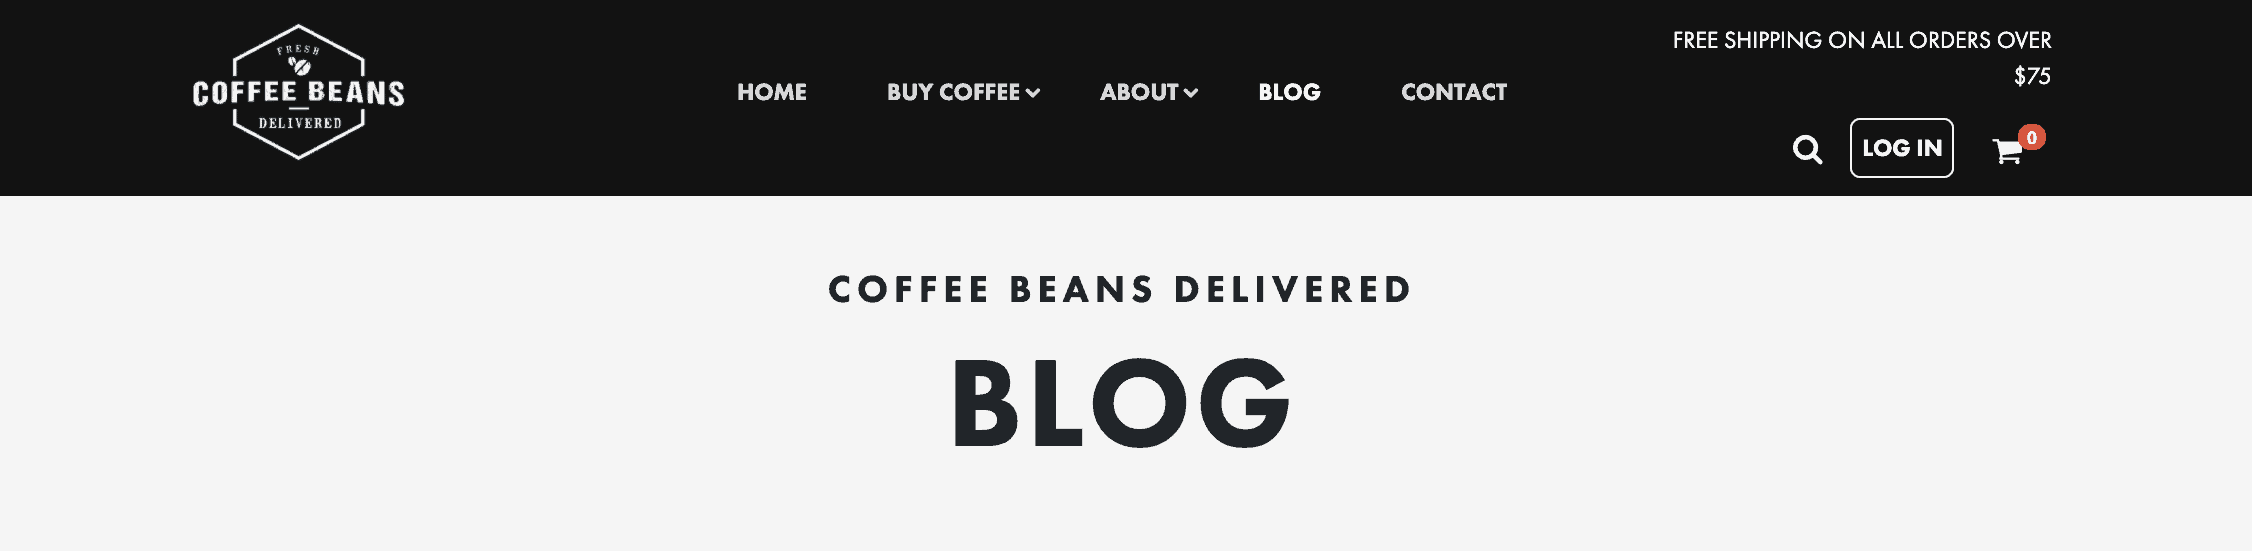 Coffee Beans Delivered Blog